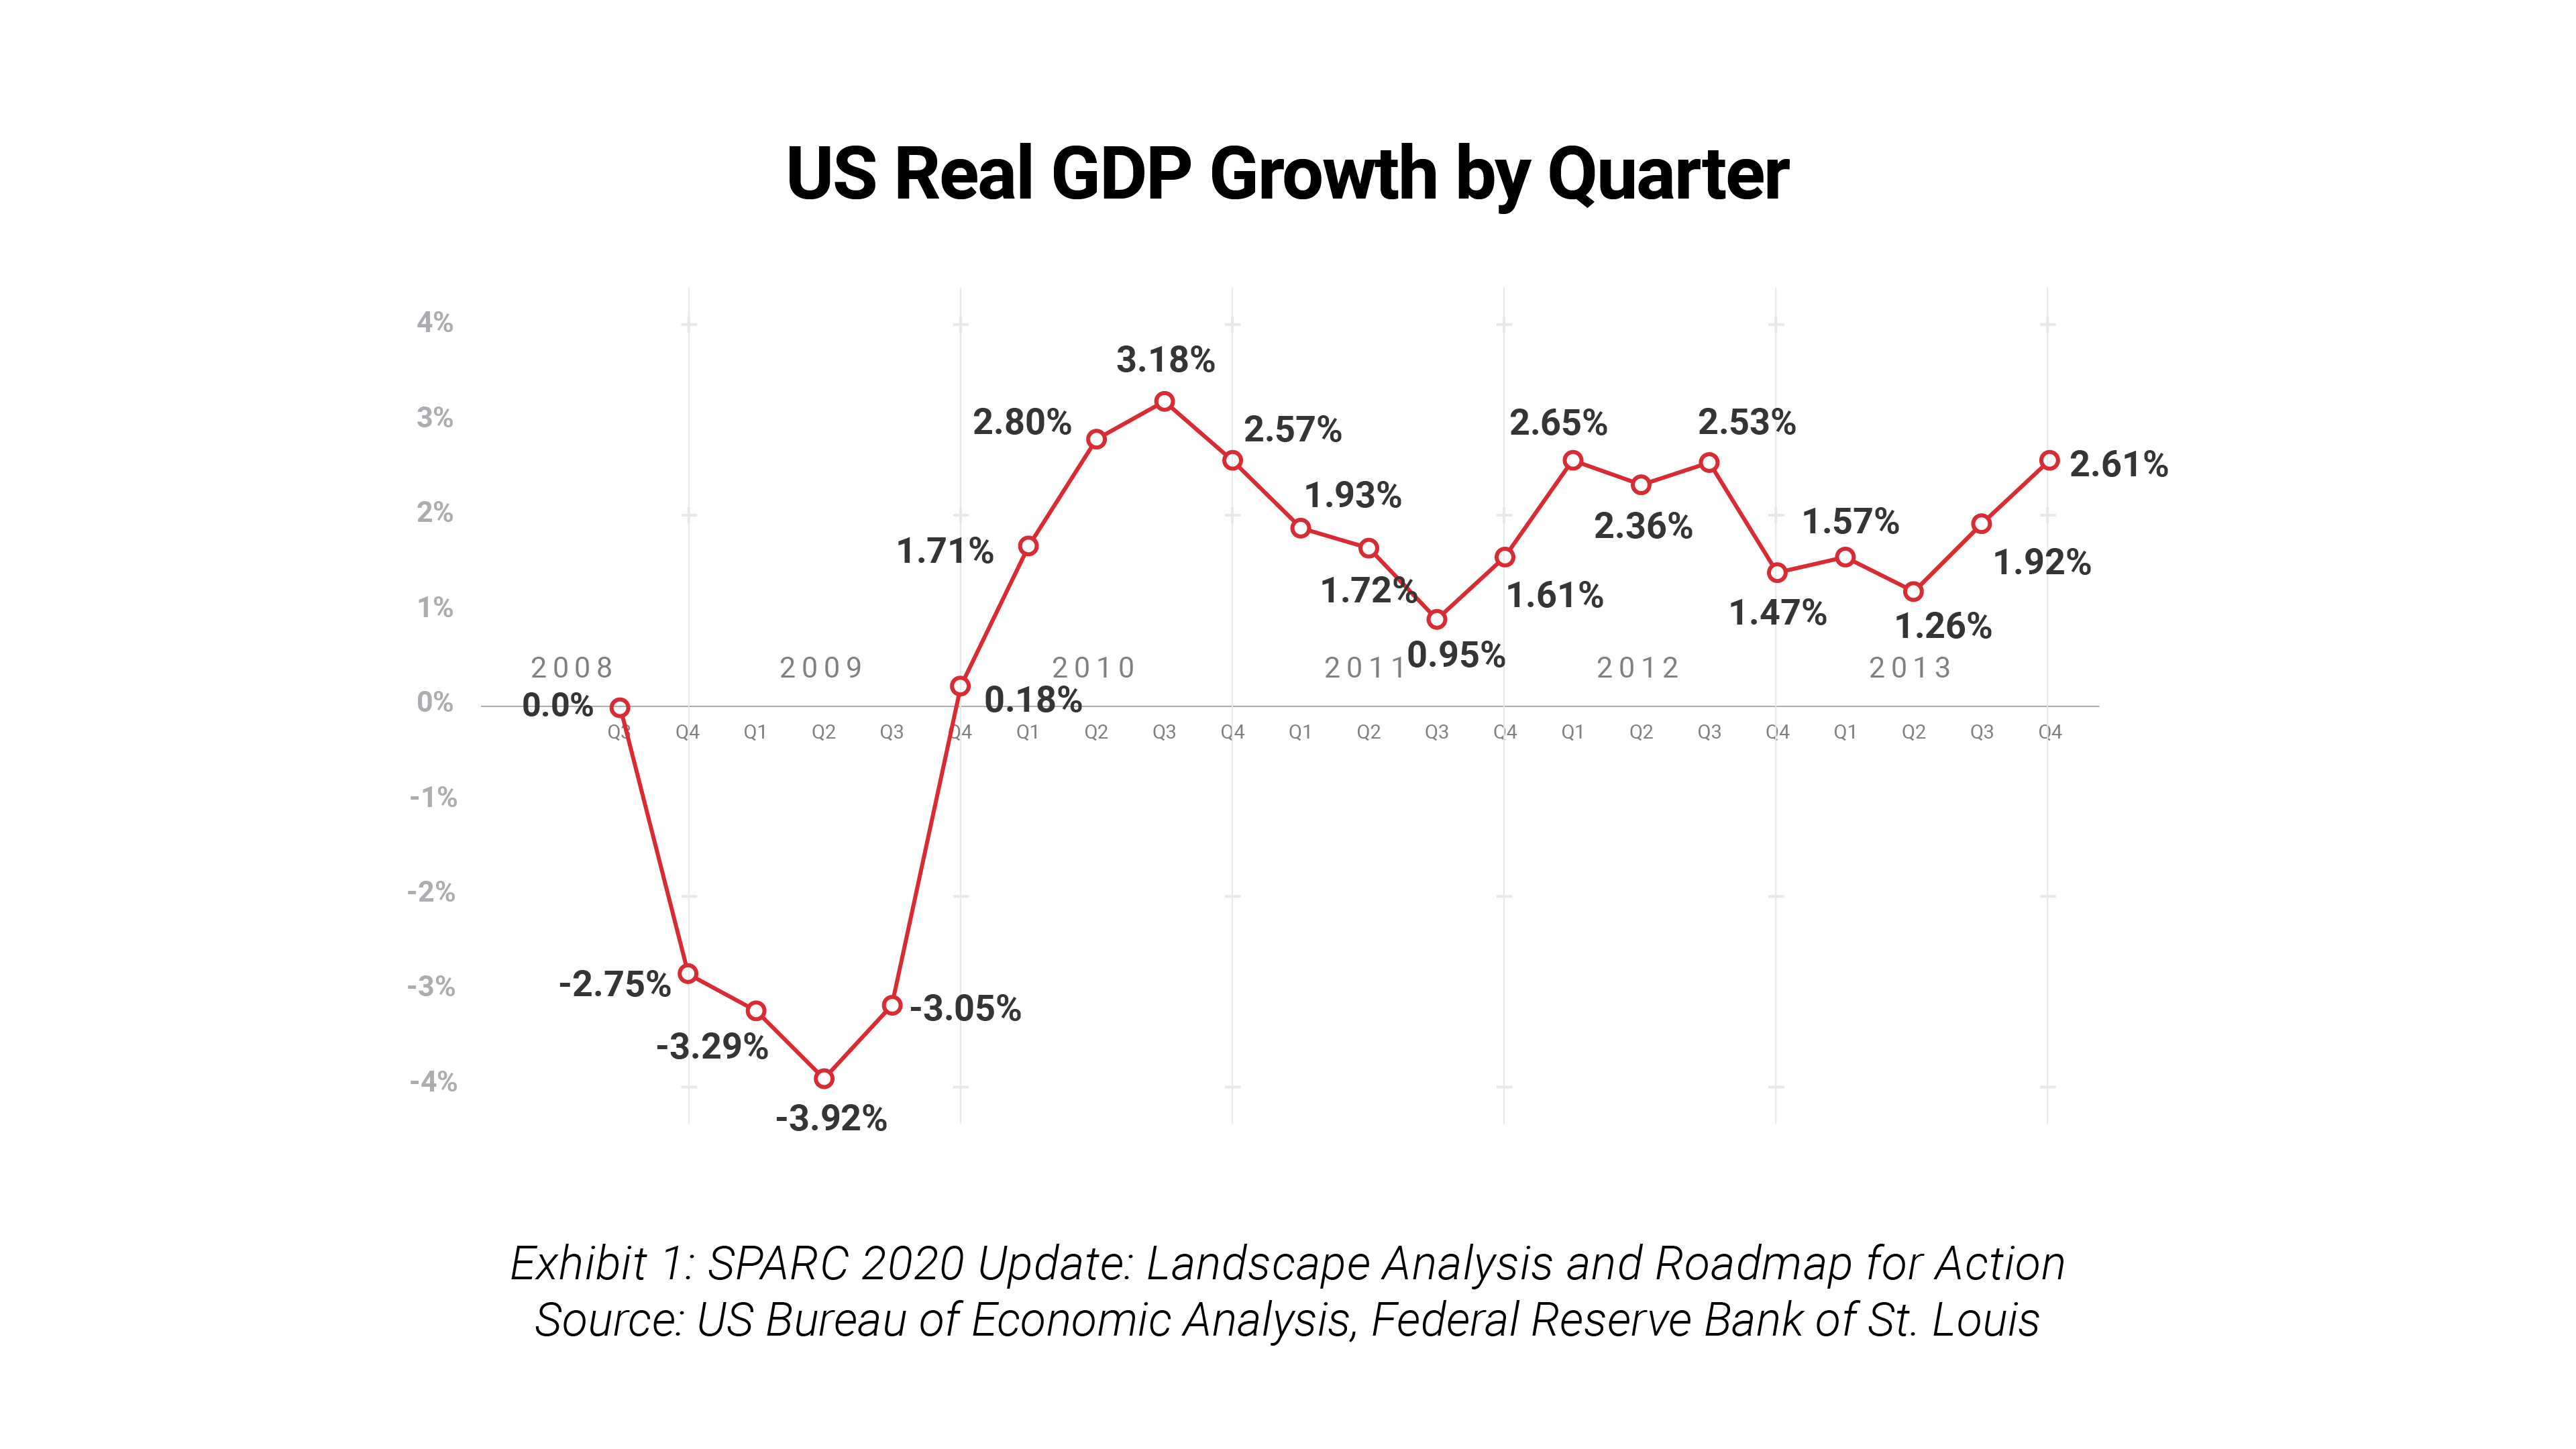 Exhibit 1: US Real GDP Growth by Quarter, 2008-2013